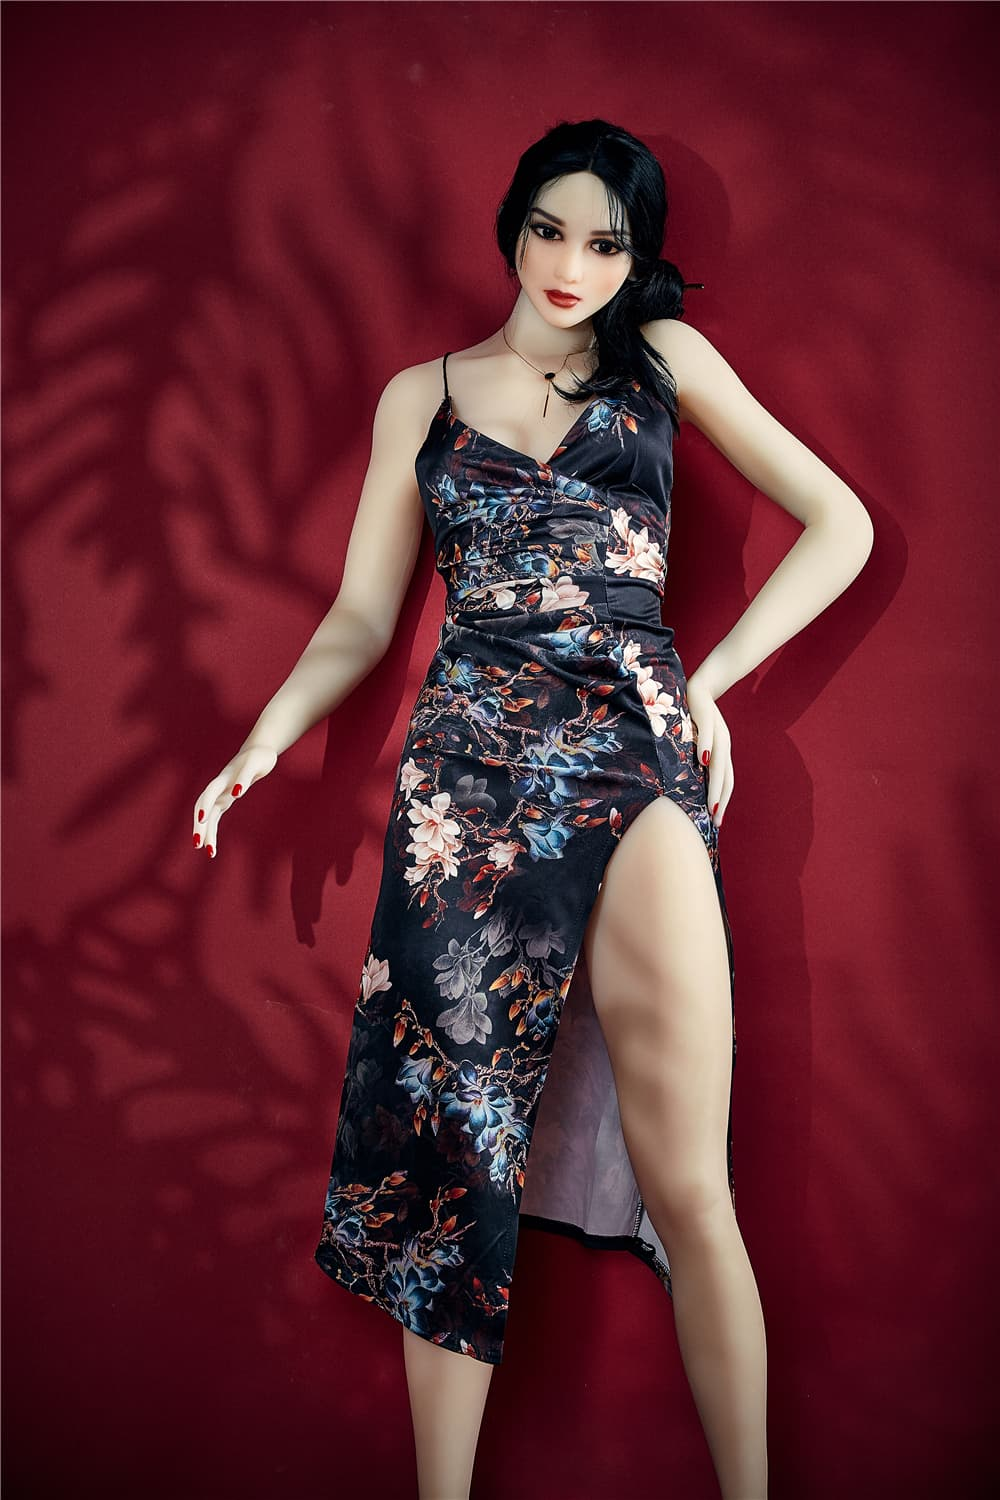 bonita 168cm black hair athletic flat chested tpe sex doll(3)